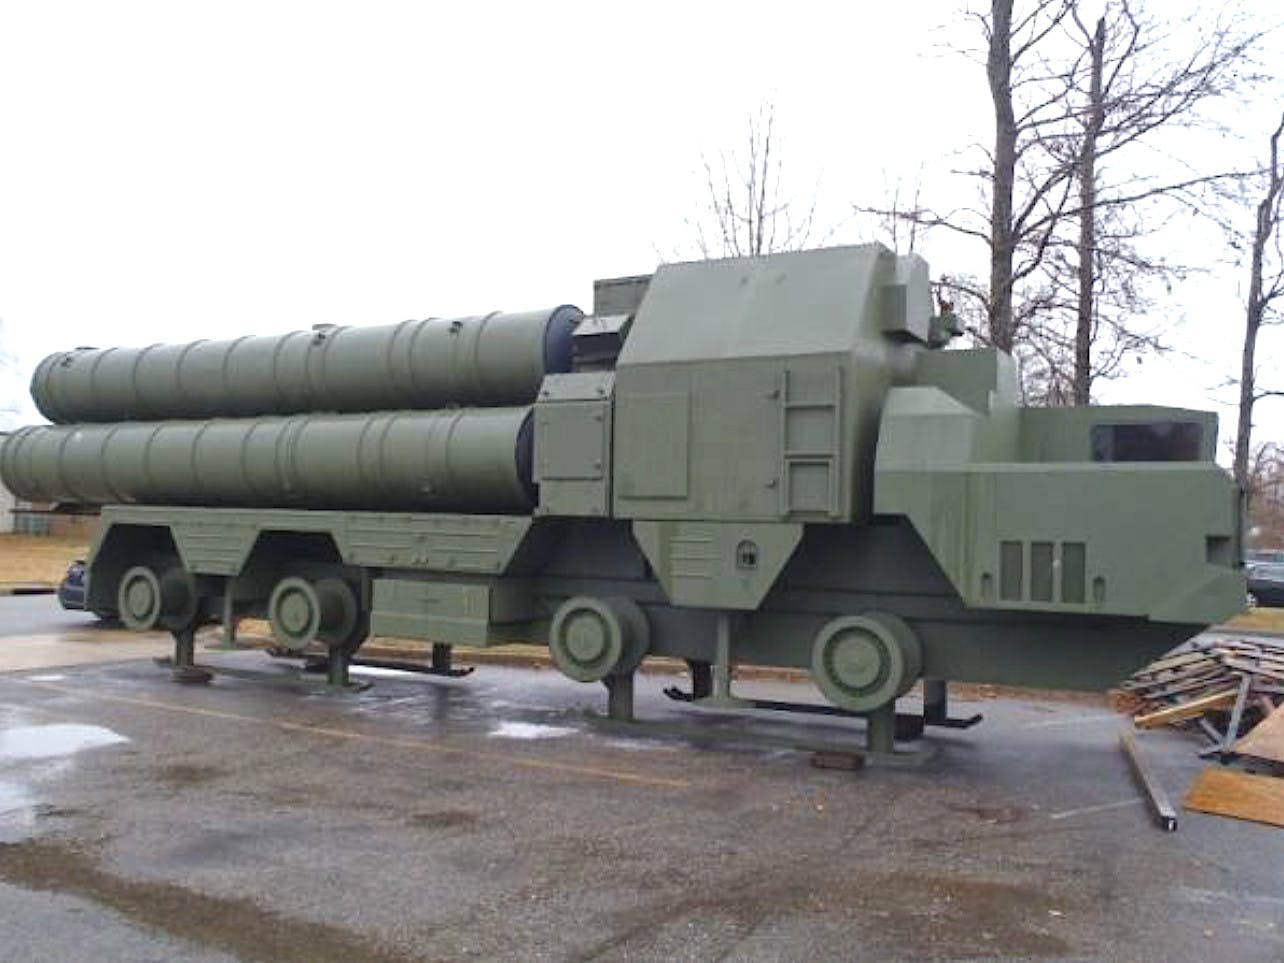 U.S. to buy Super Realistic mock-ups of Russian S-300 air defense system